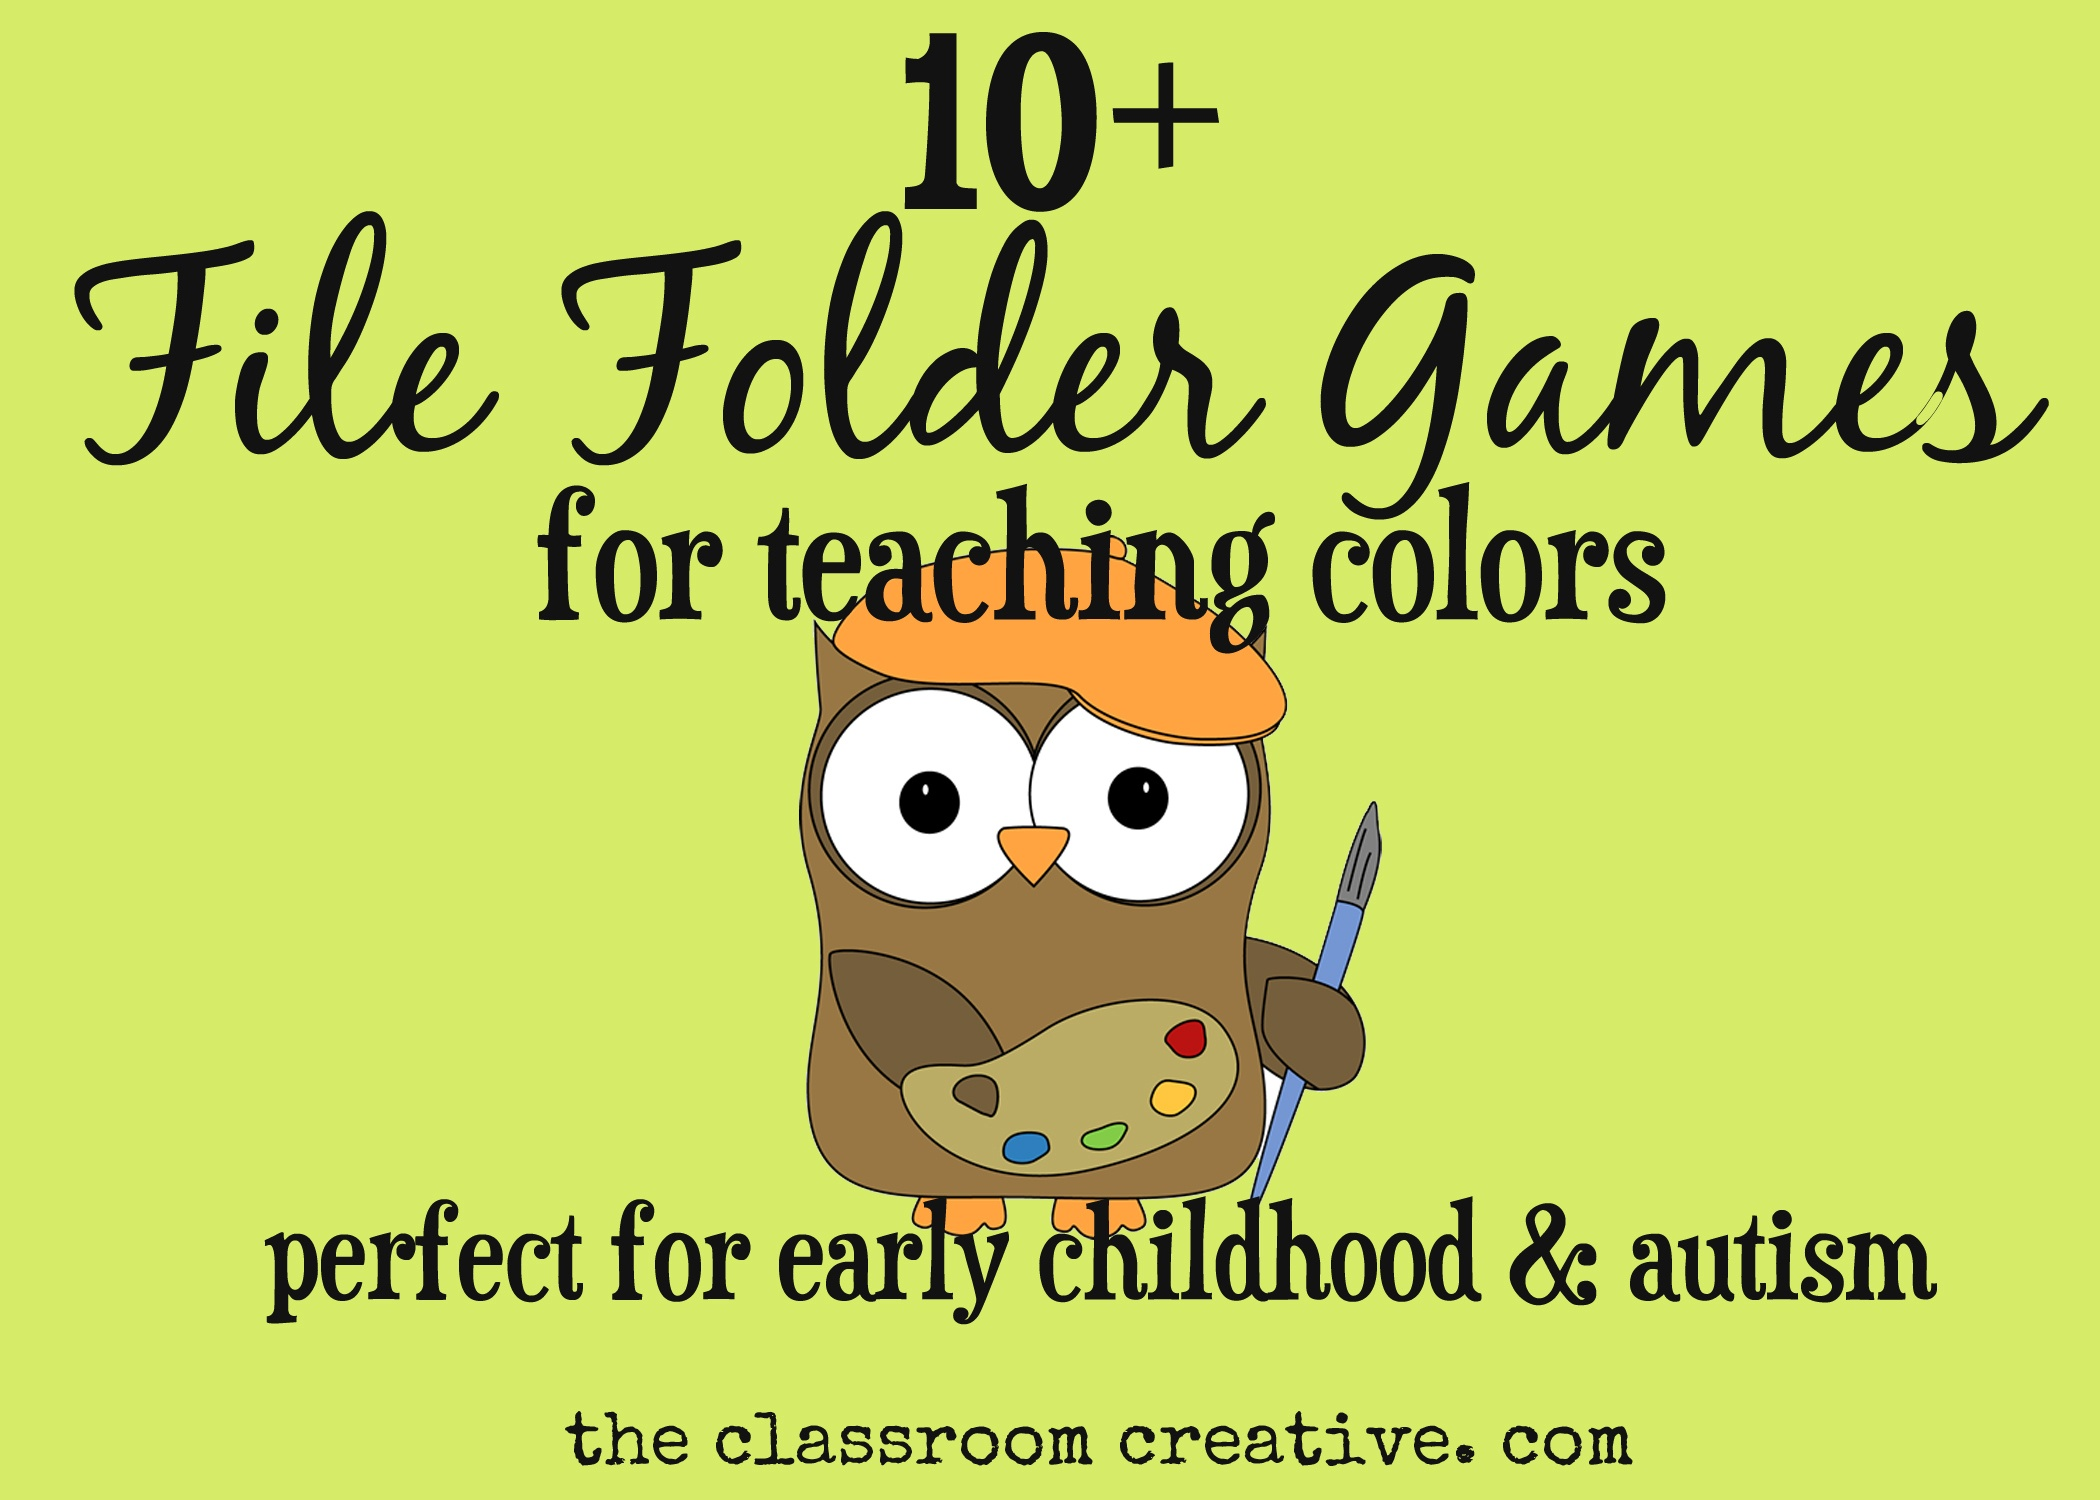 File Folder Games For Teaching Colors - Free Printable Fall File Folder Games